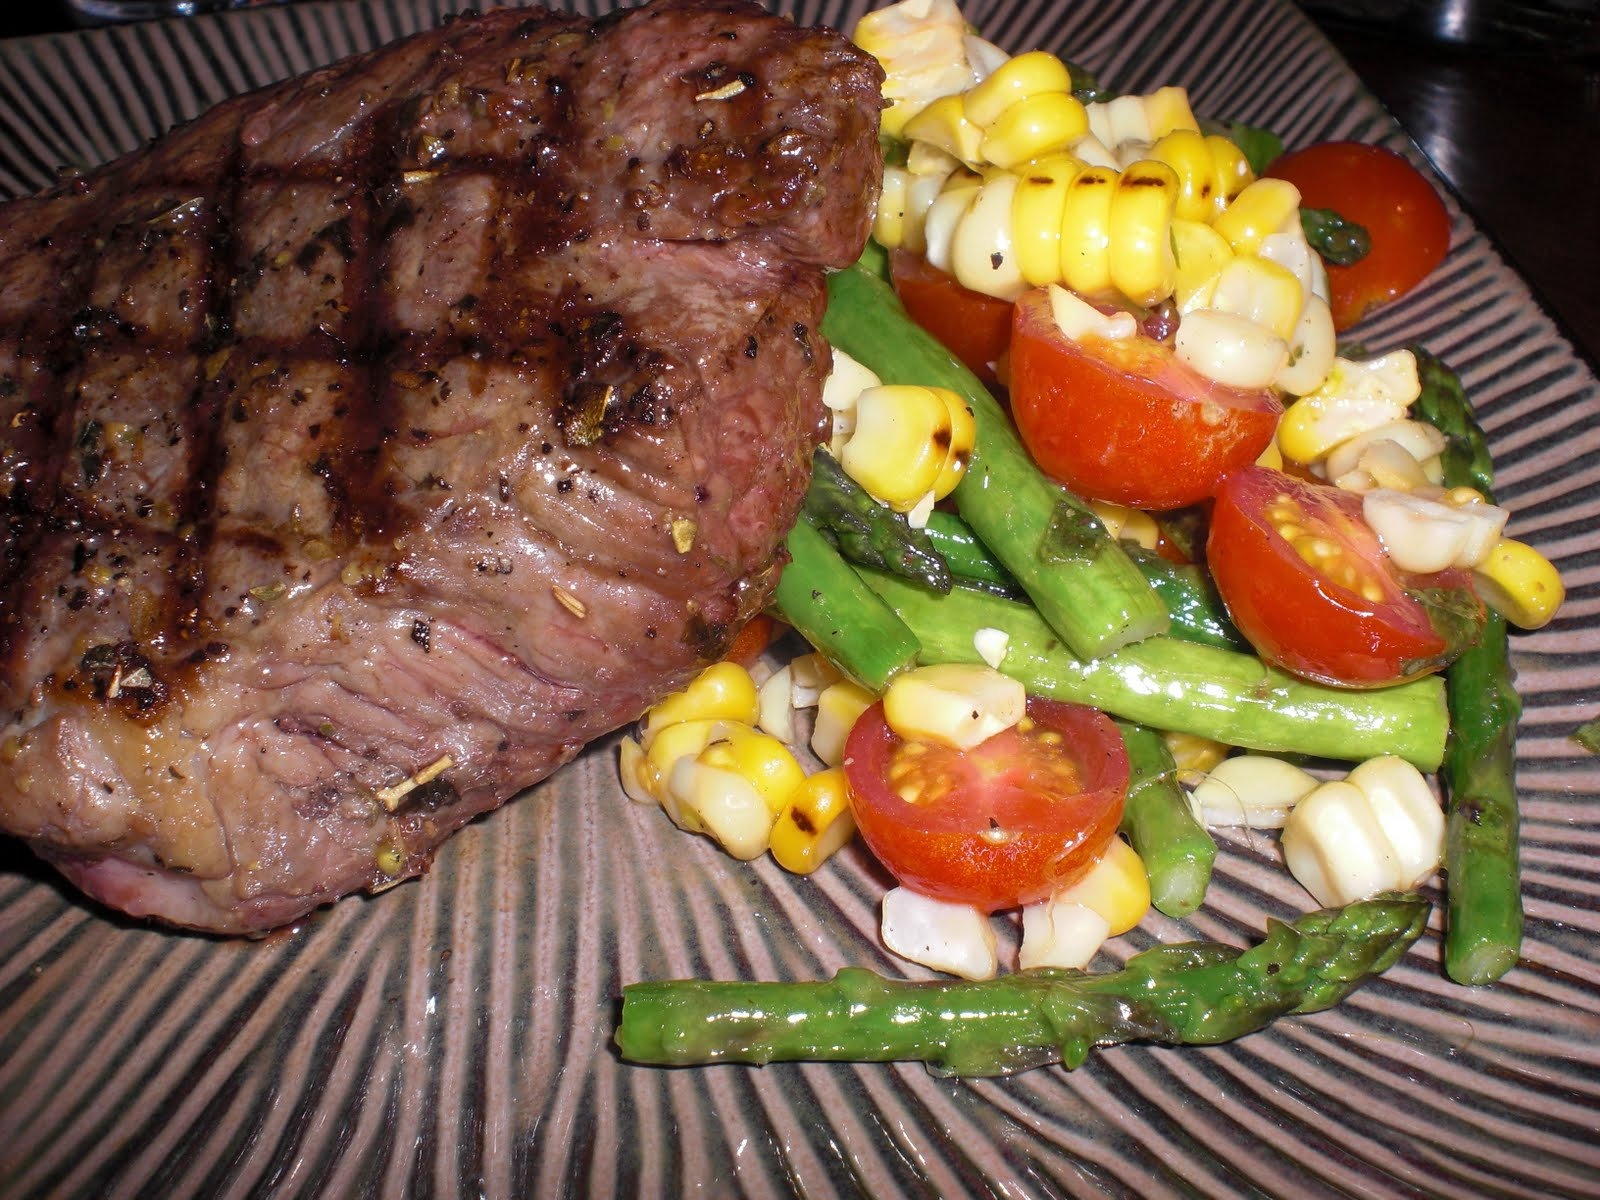 Grilled Sirloin Steaks With Corn, Asparagus, And Tomato Salad